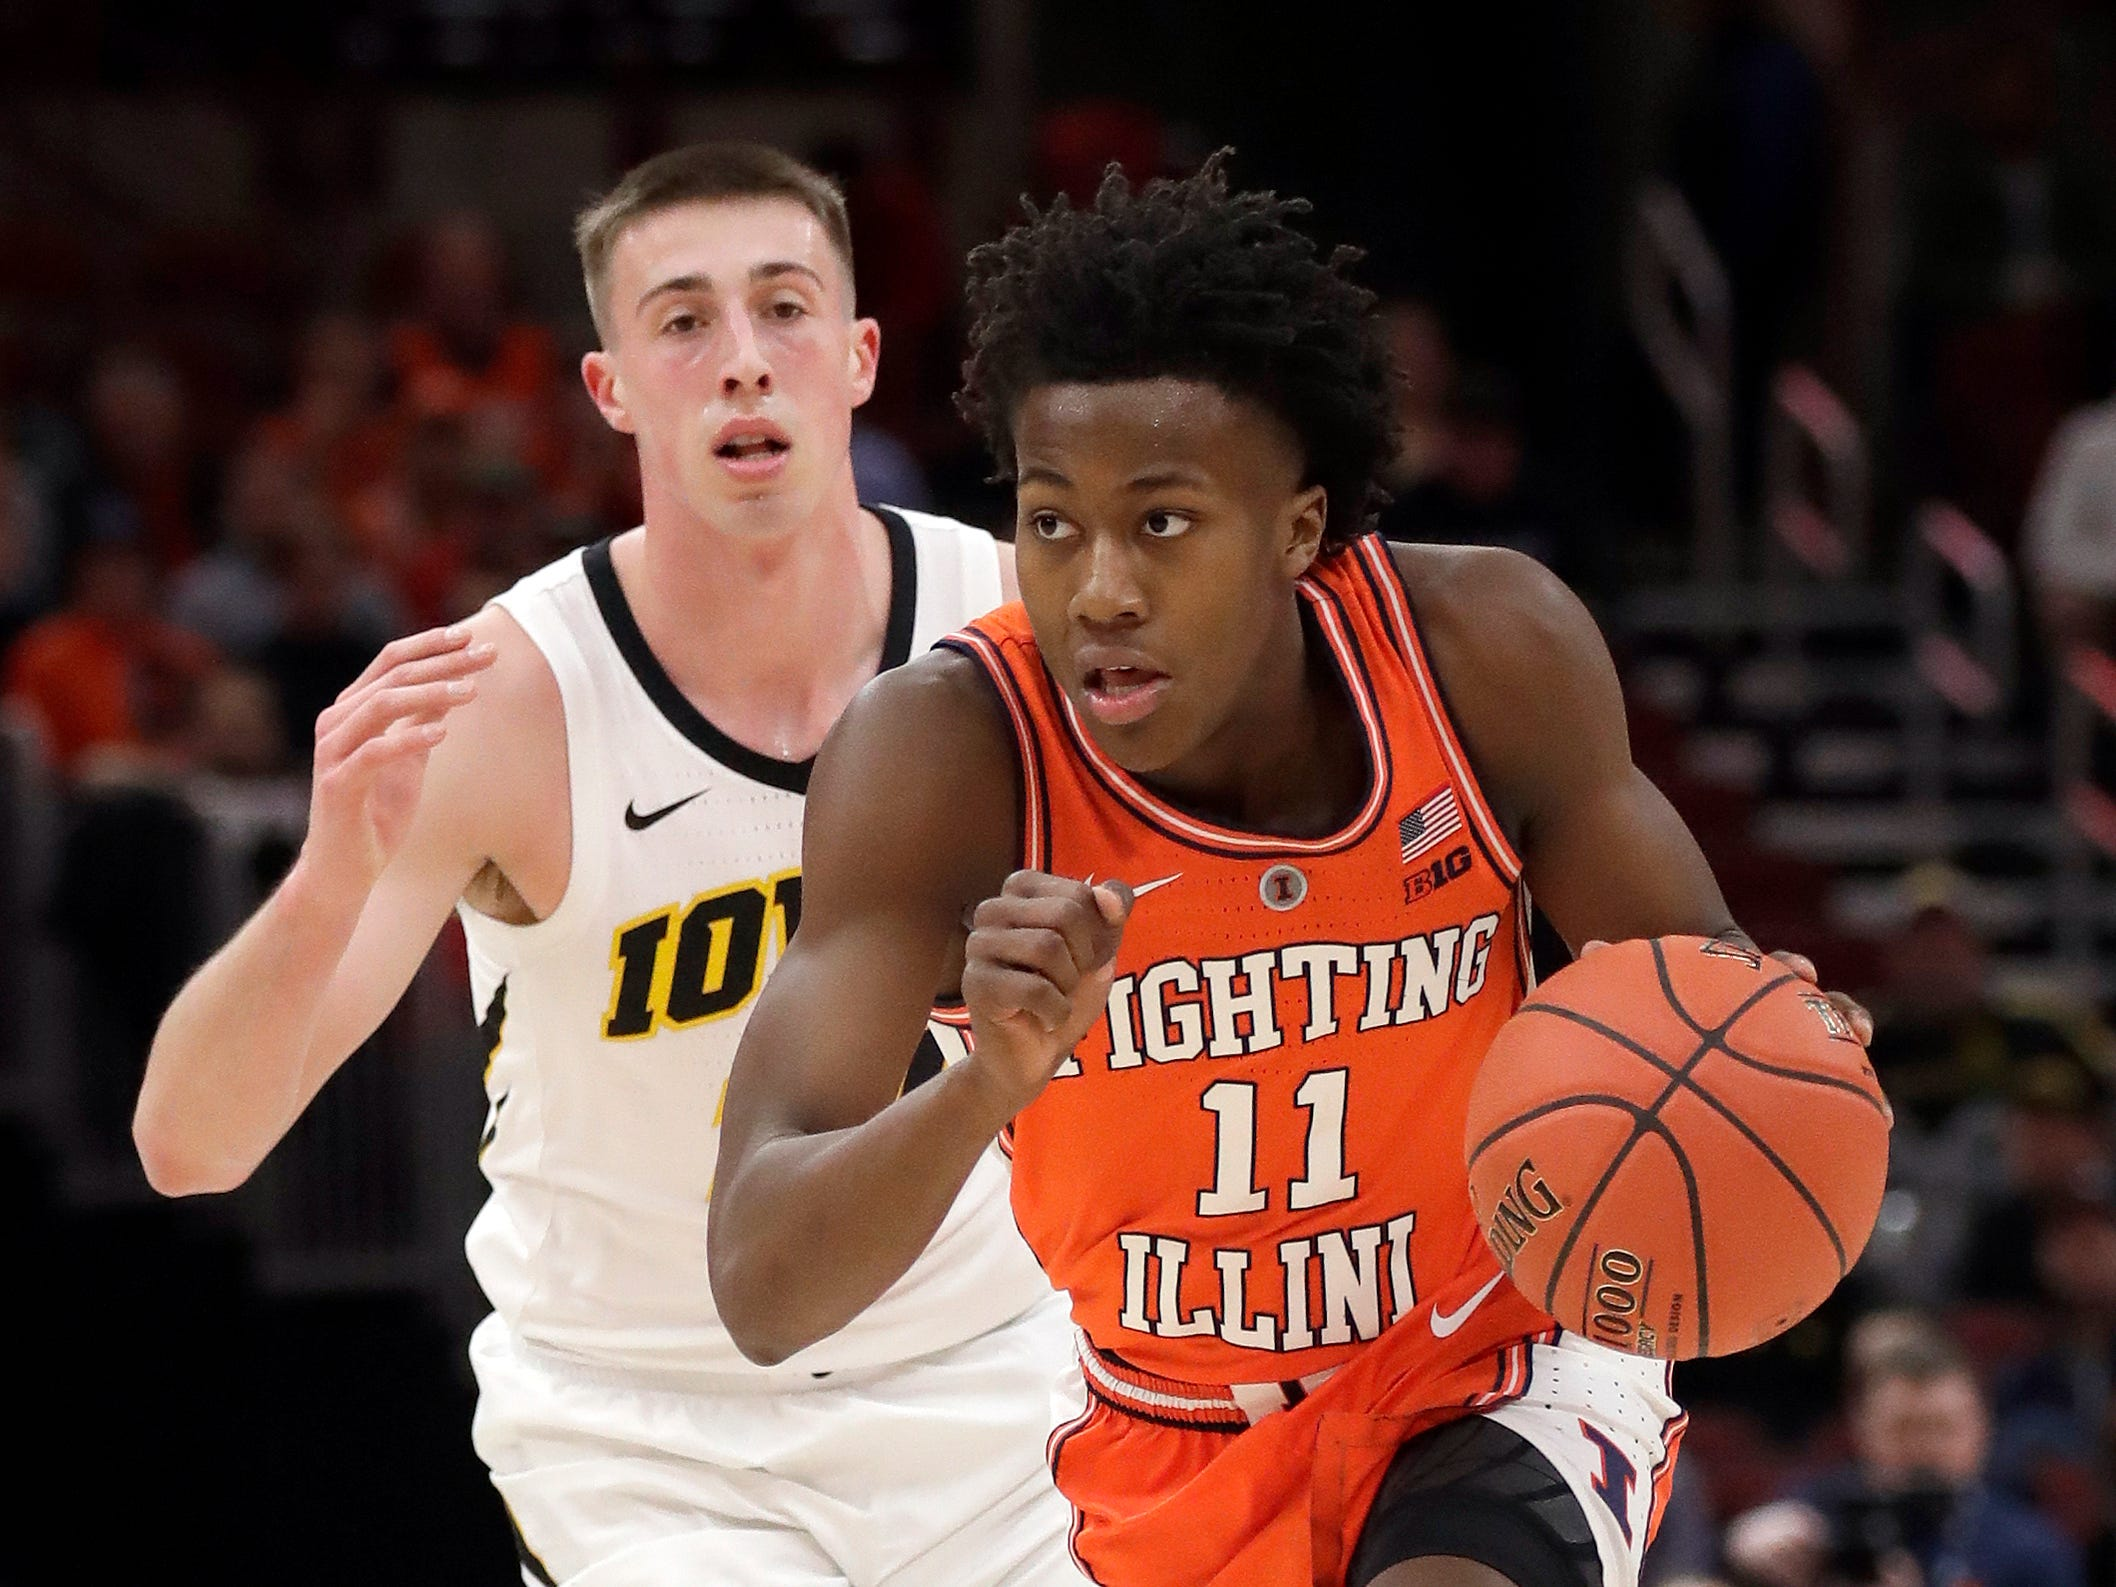 Illinois's Ayo Dosunmu (11) drives against Iowa's Joe Wieskamp during the first half of an NCAA college basketball game in the second round of the Big Ten Conference tournament, Thursday, March 14, 2019, in Chicago. (AP Photo/Nam Y. Huh)